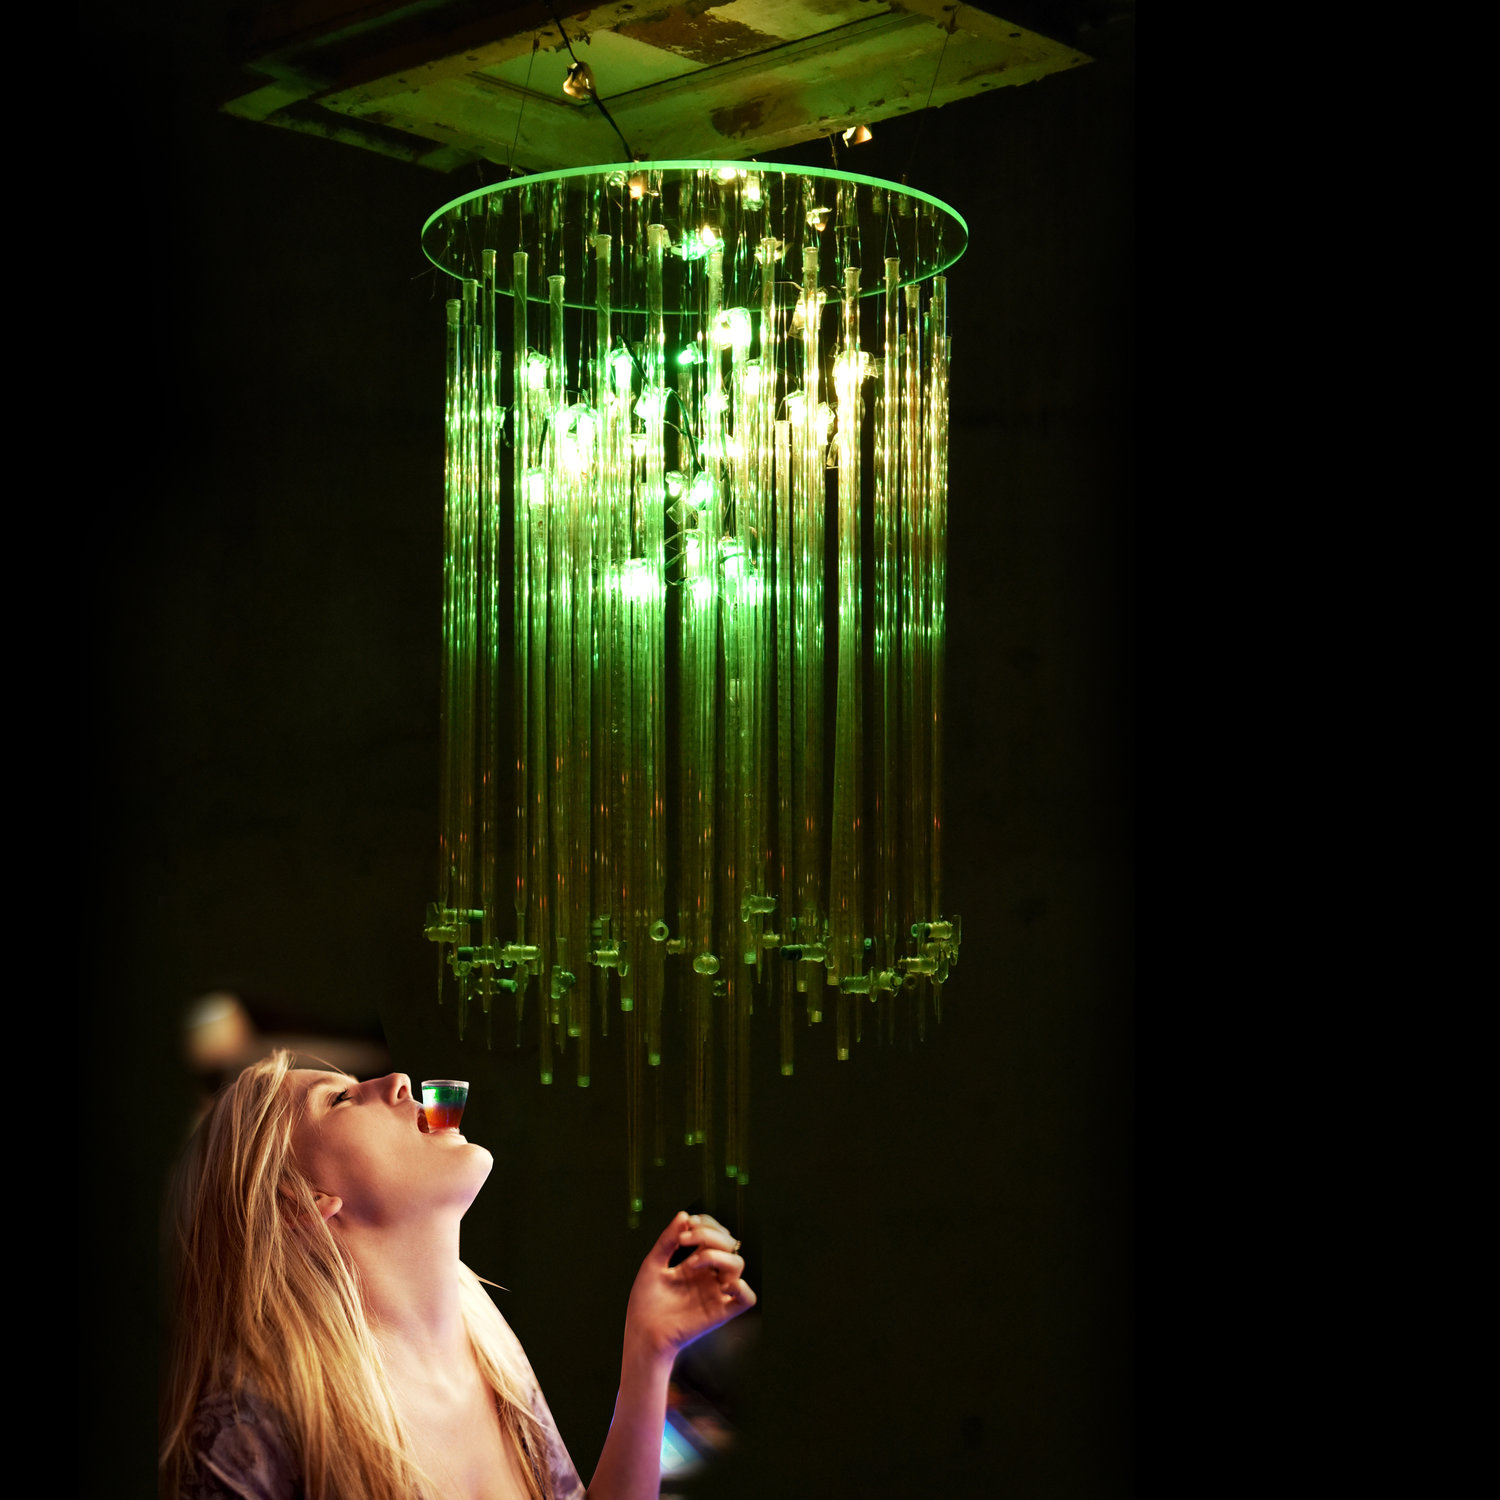 'Tequila chandelier' was a fun part of our future focused exhibition that we held, which explored how new technologies including biotechnology and smart technology could change our lives. On opening night we did in fact fill it with tequila, to provide the perfect tonic for a good time to all our visitors!